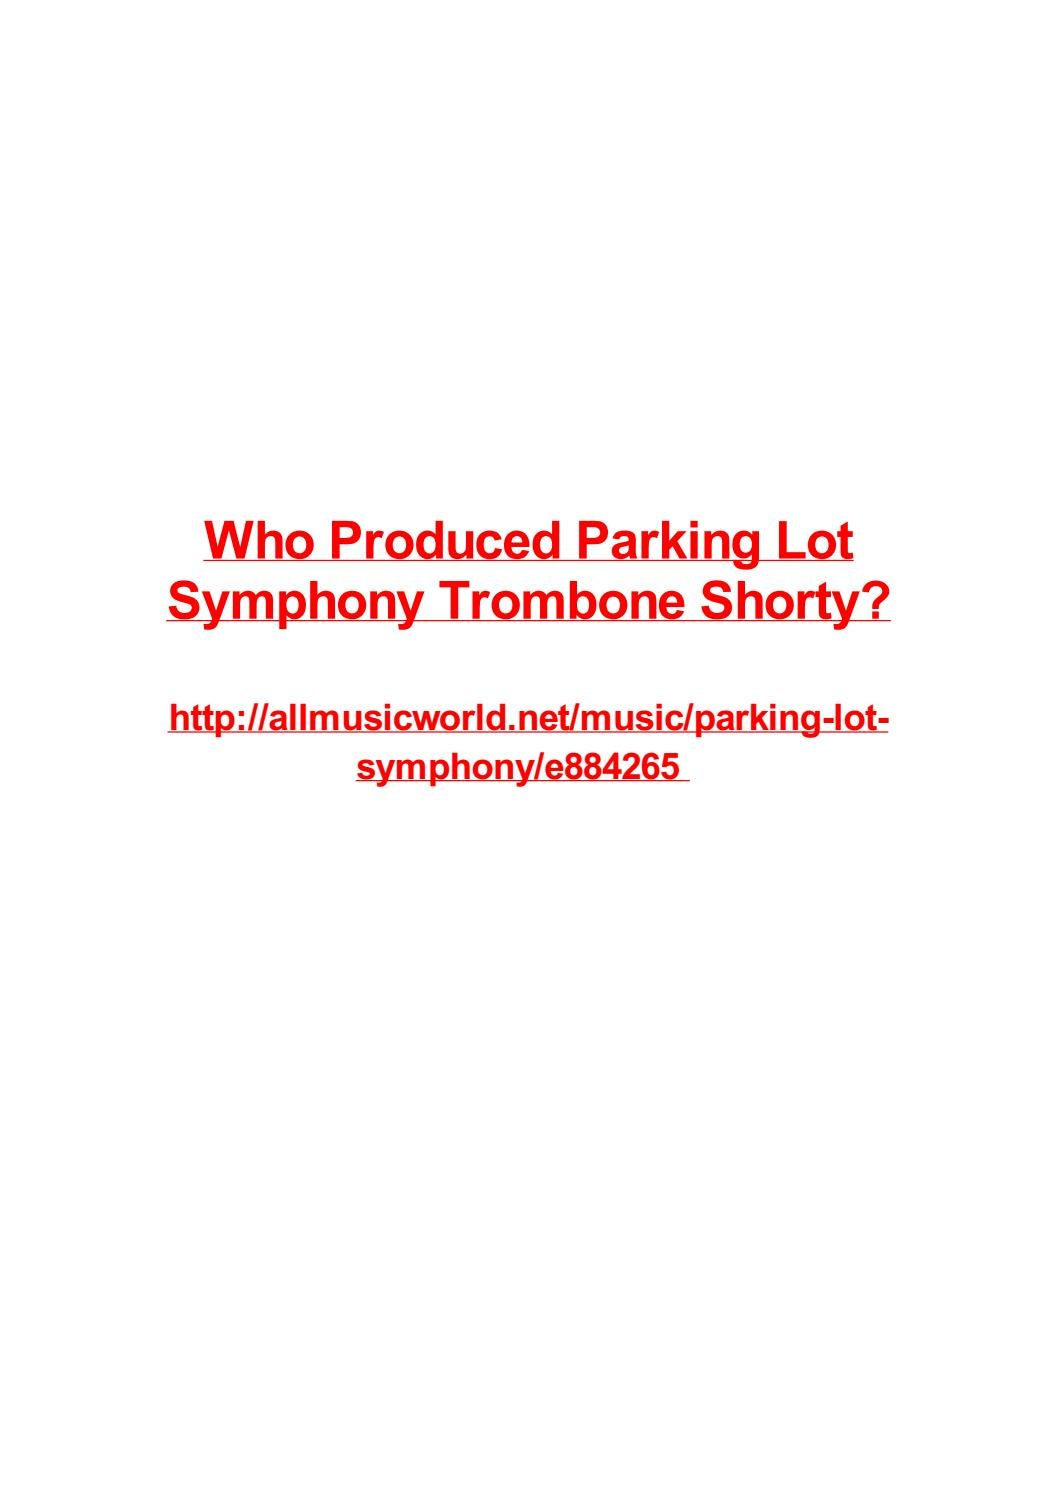 Who produced parking lot symphony trombone shorty by Vjollca